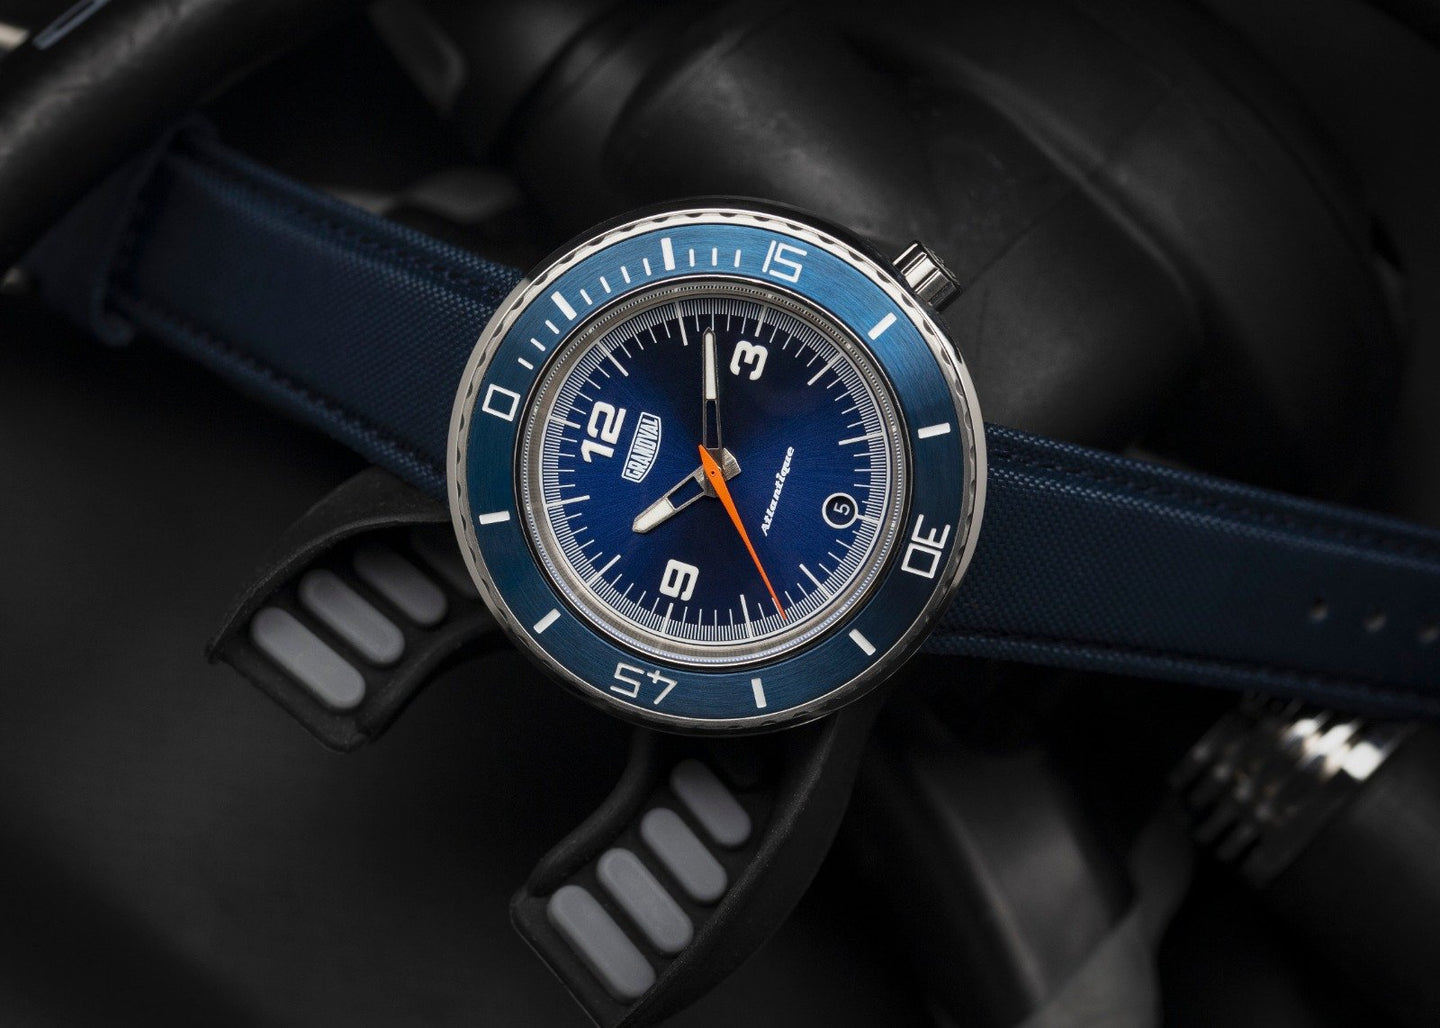 Montre Grandval Atlantique Dual Time watch